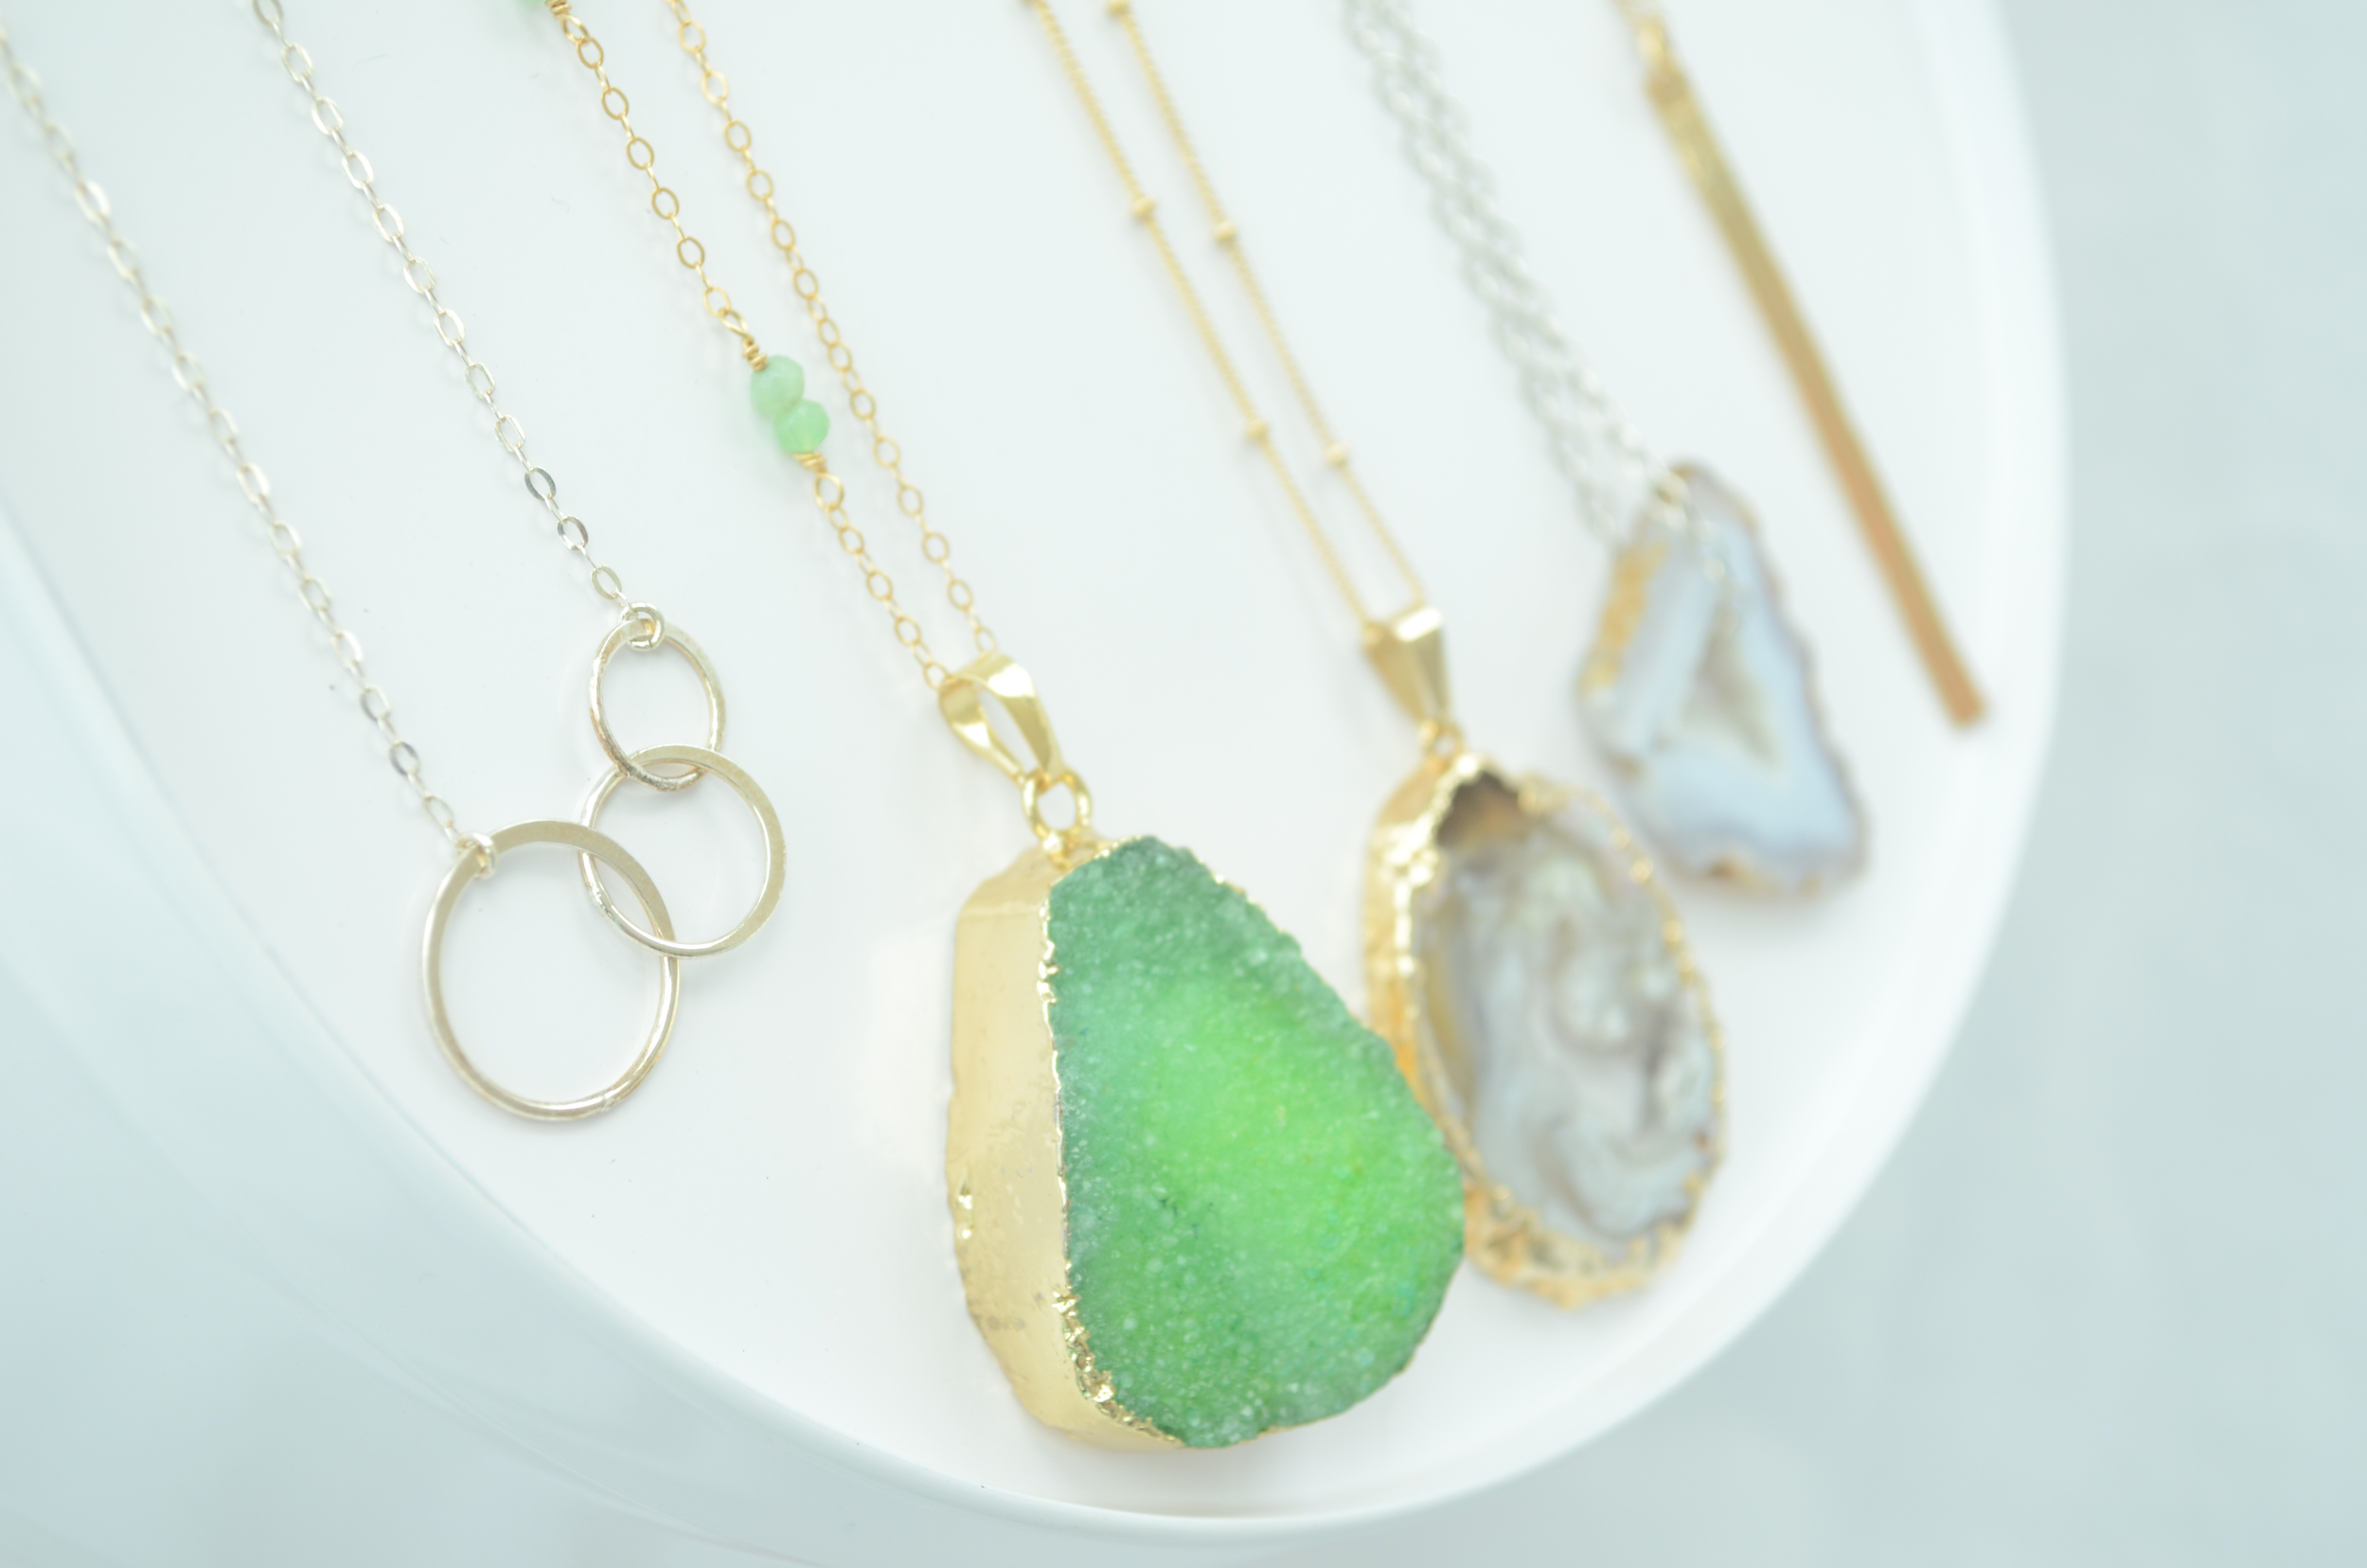 You are going to fall in love with these necklaces! They complete any outfit.